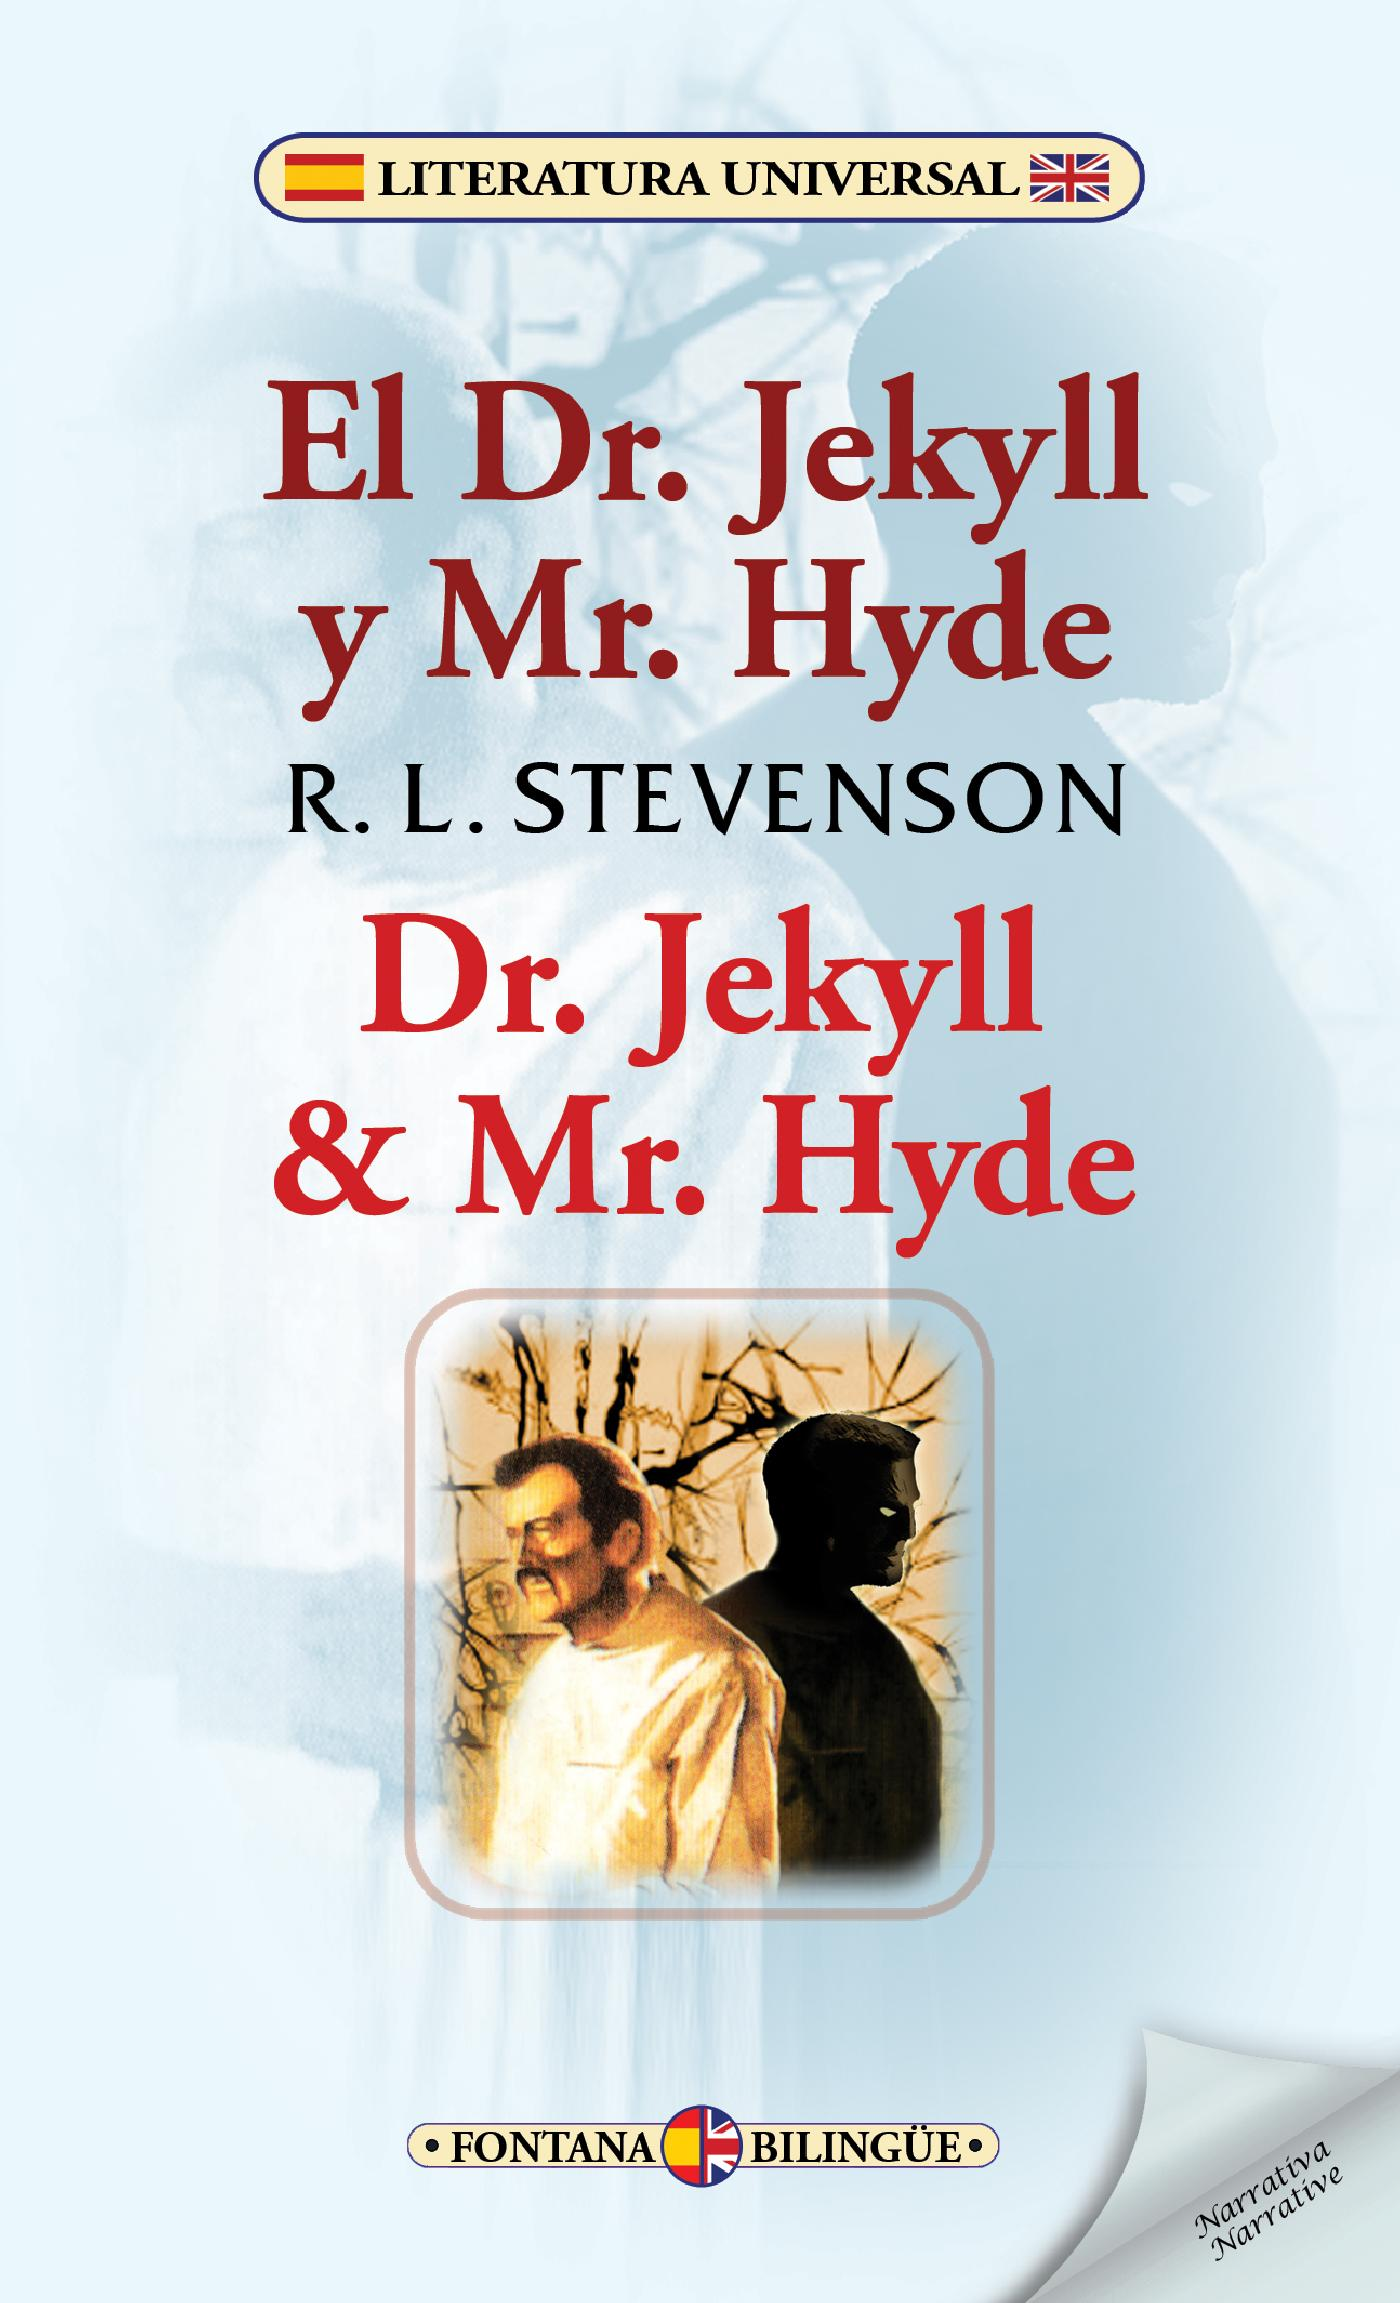 EL DR. JEKYLL Y MR. HYDE / DR. JEKYLL & MR. HYDE